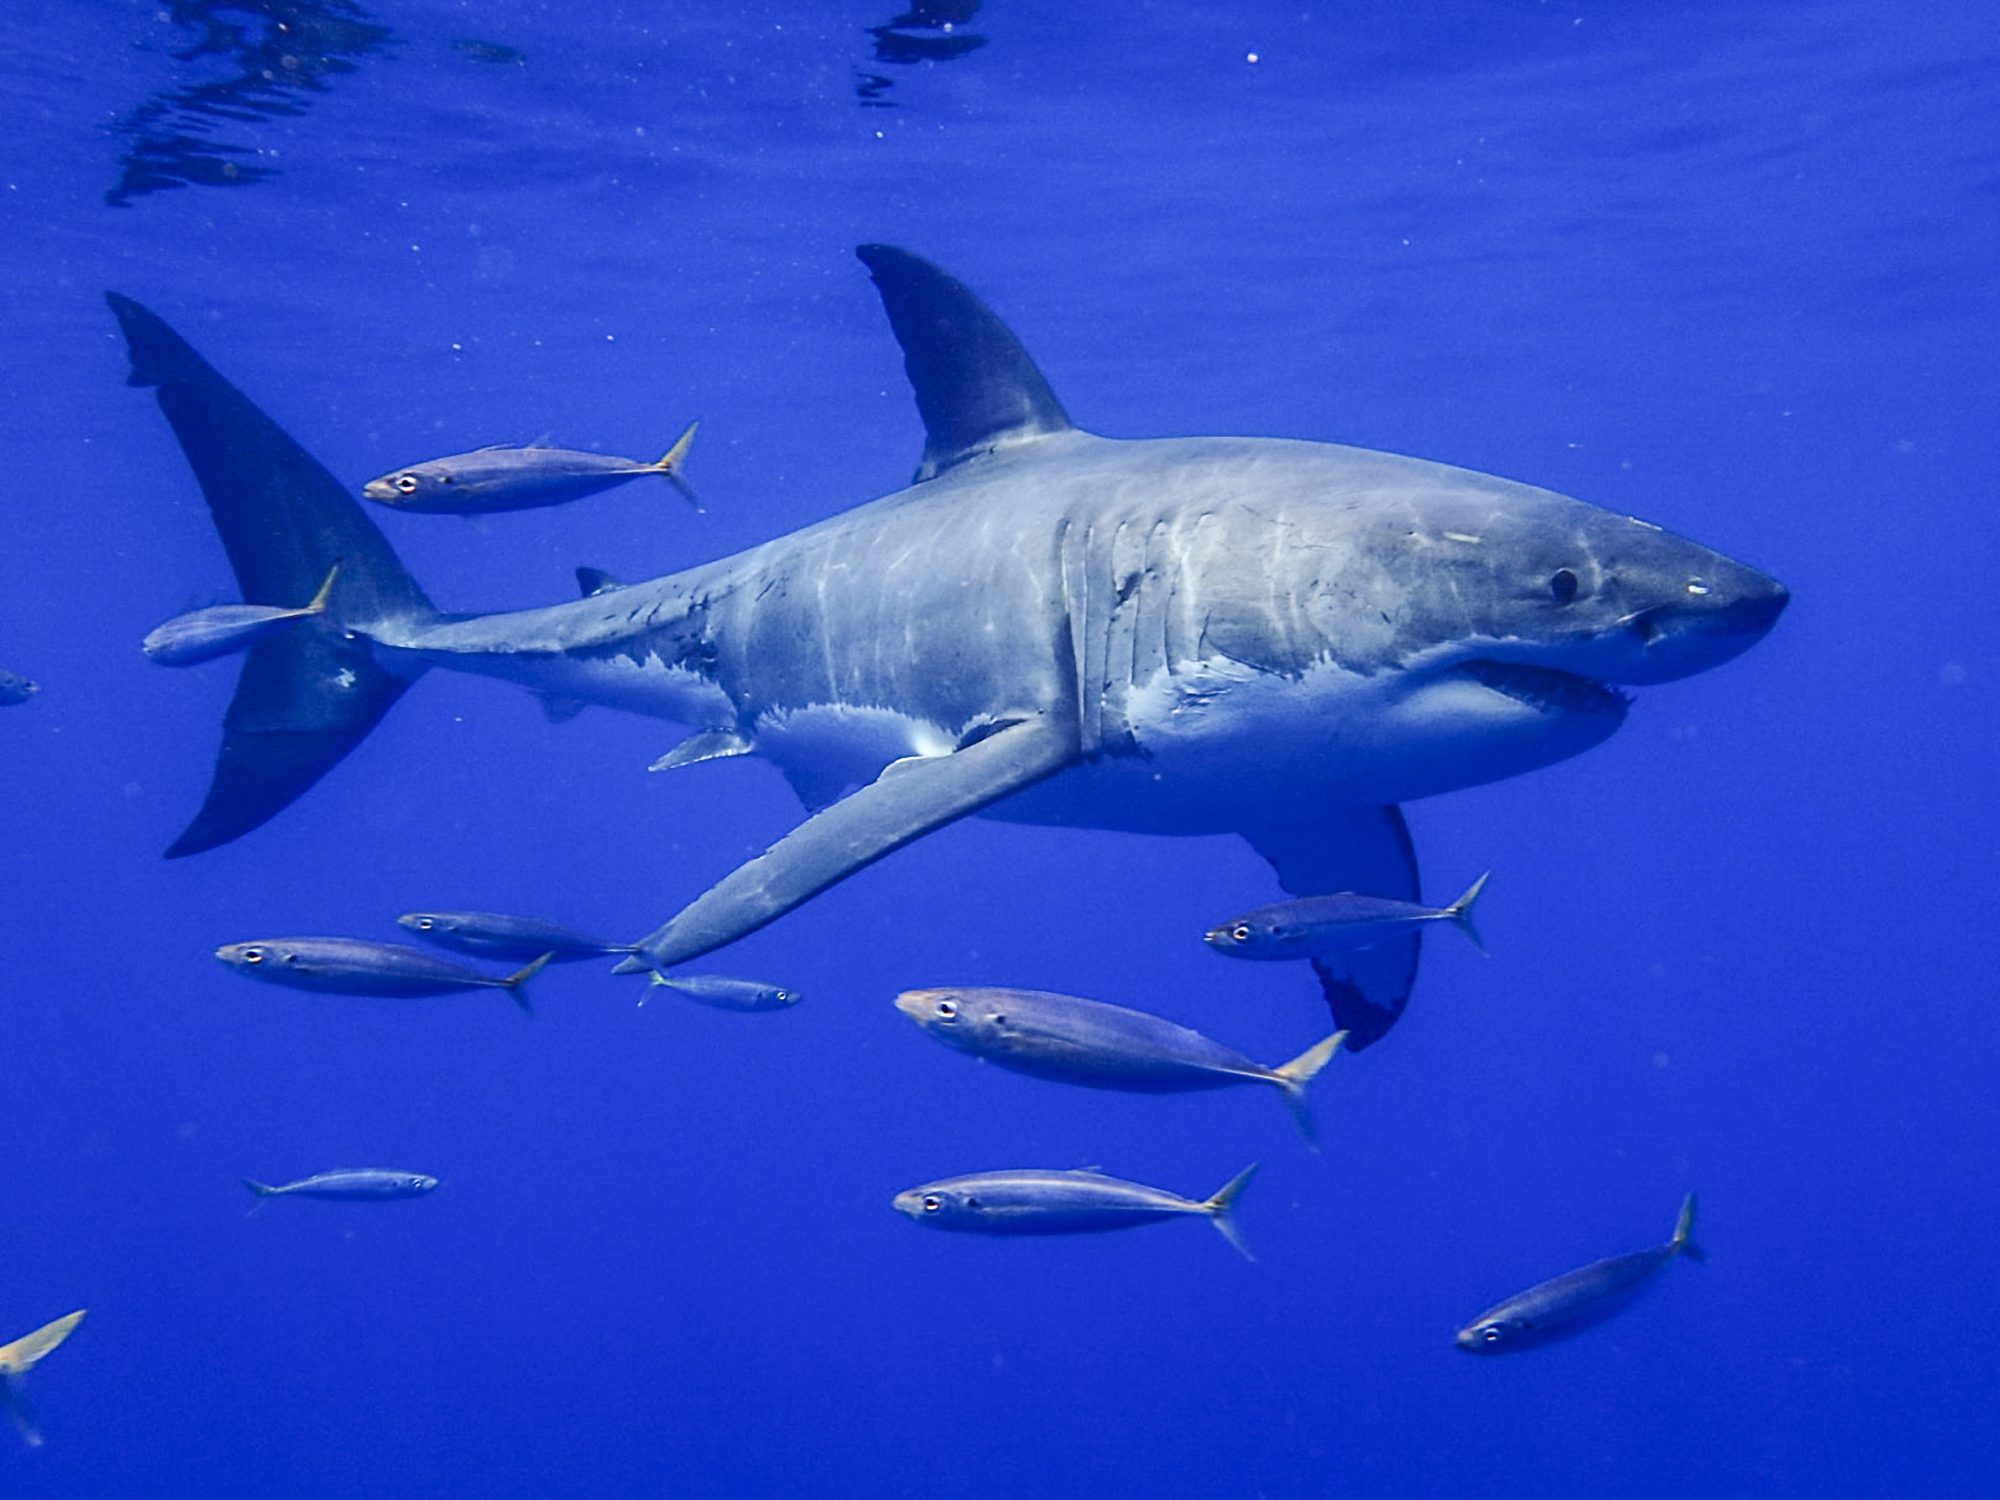 A large great white swims through the blue